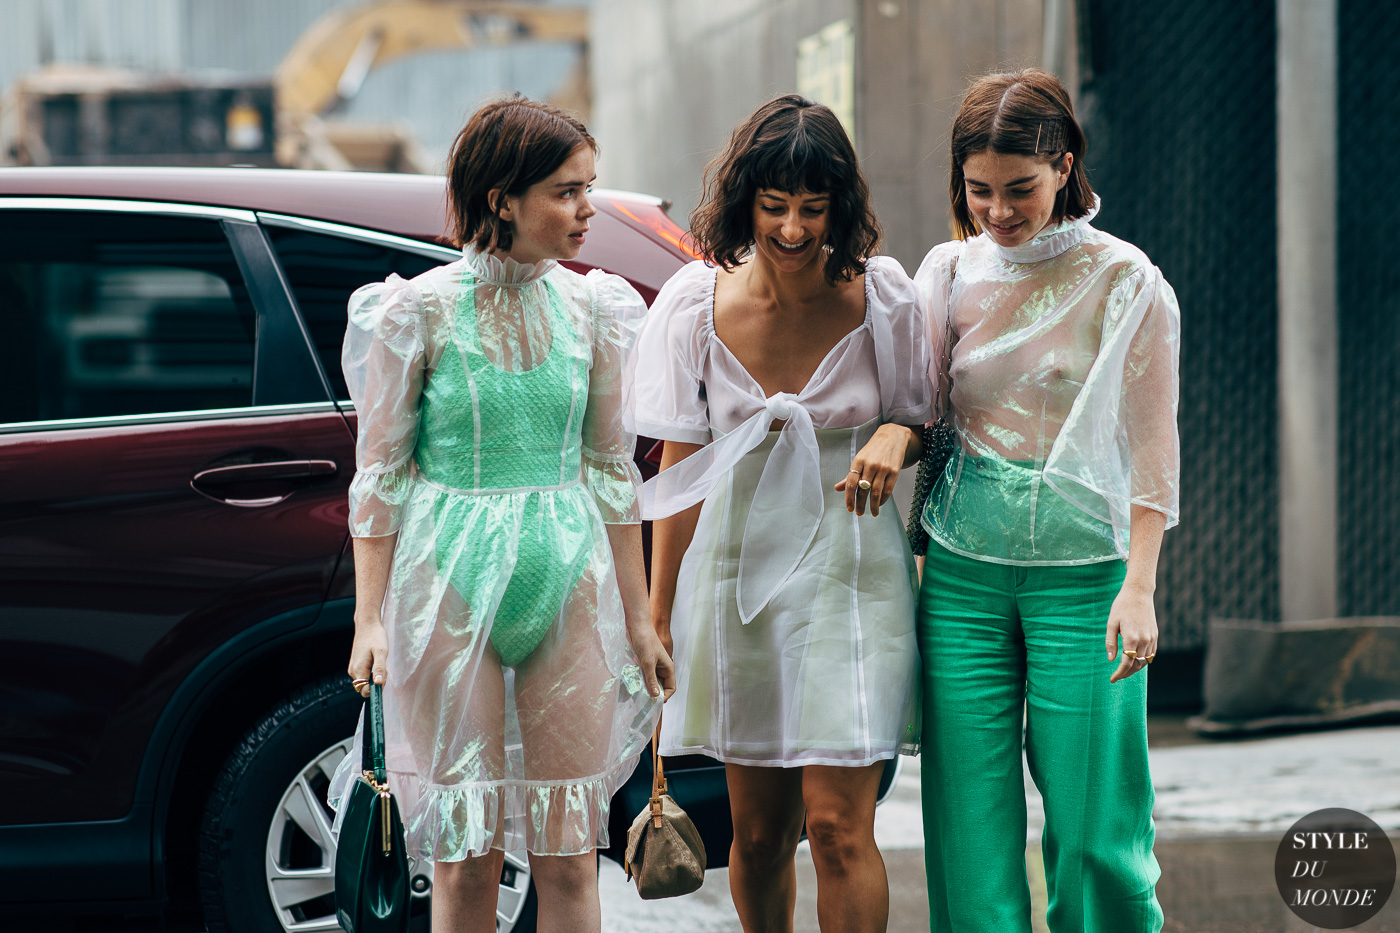 Reese, Alyssa Coscarelli and Molly Blutstein by STYLEDUMONDE Street Style Fashion Photography20180908_48A5904